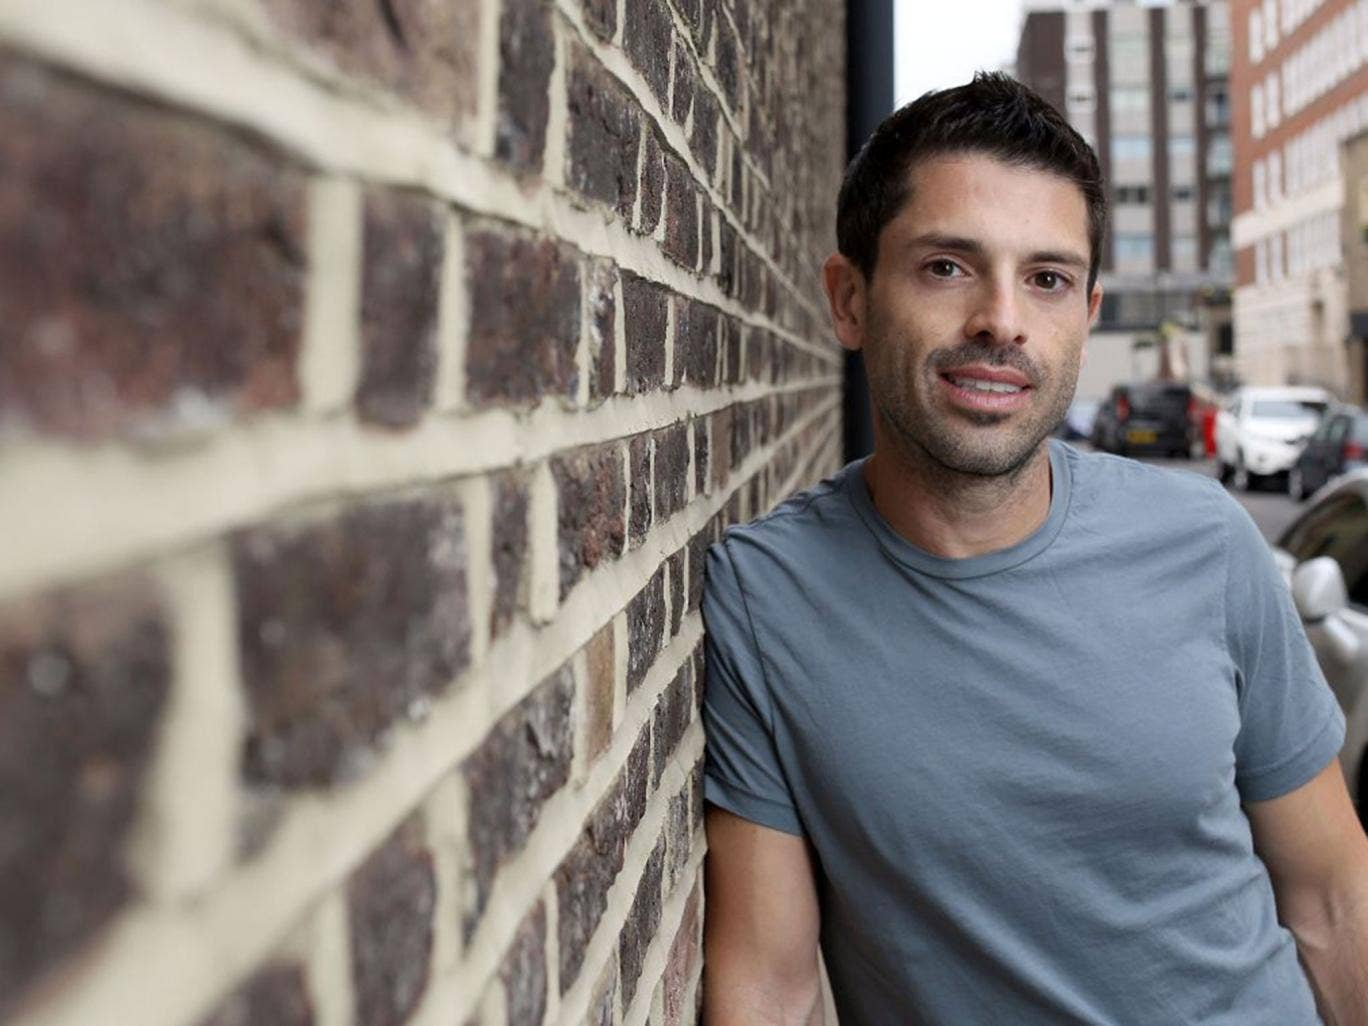 Well connected: more than five million people use Grindr, founded by Joel Simkhai